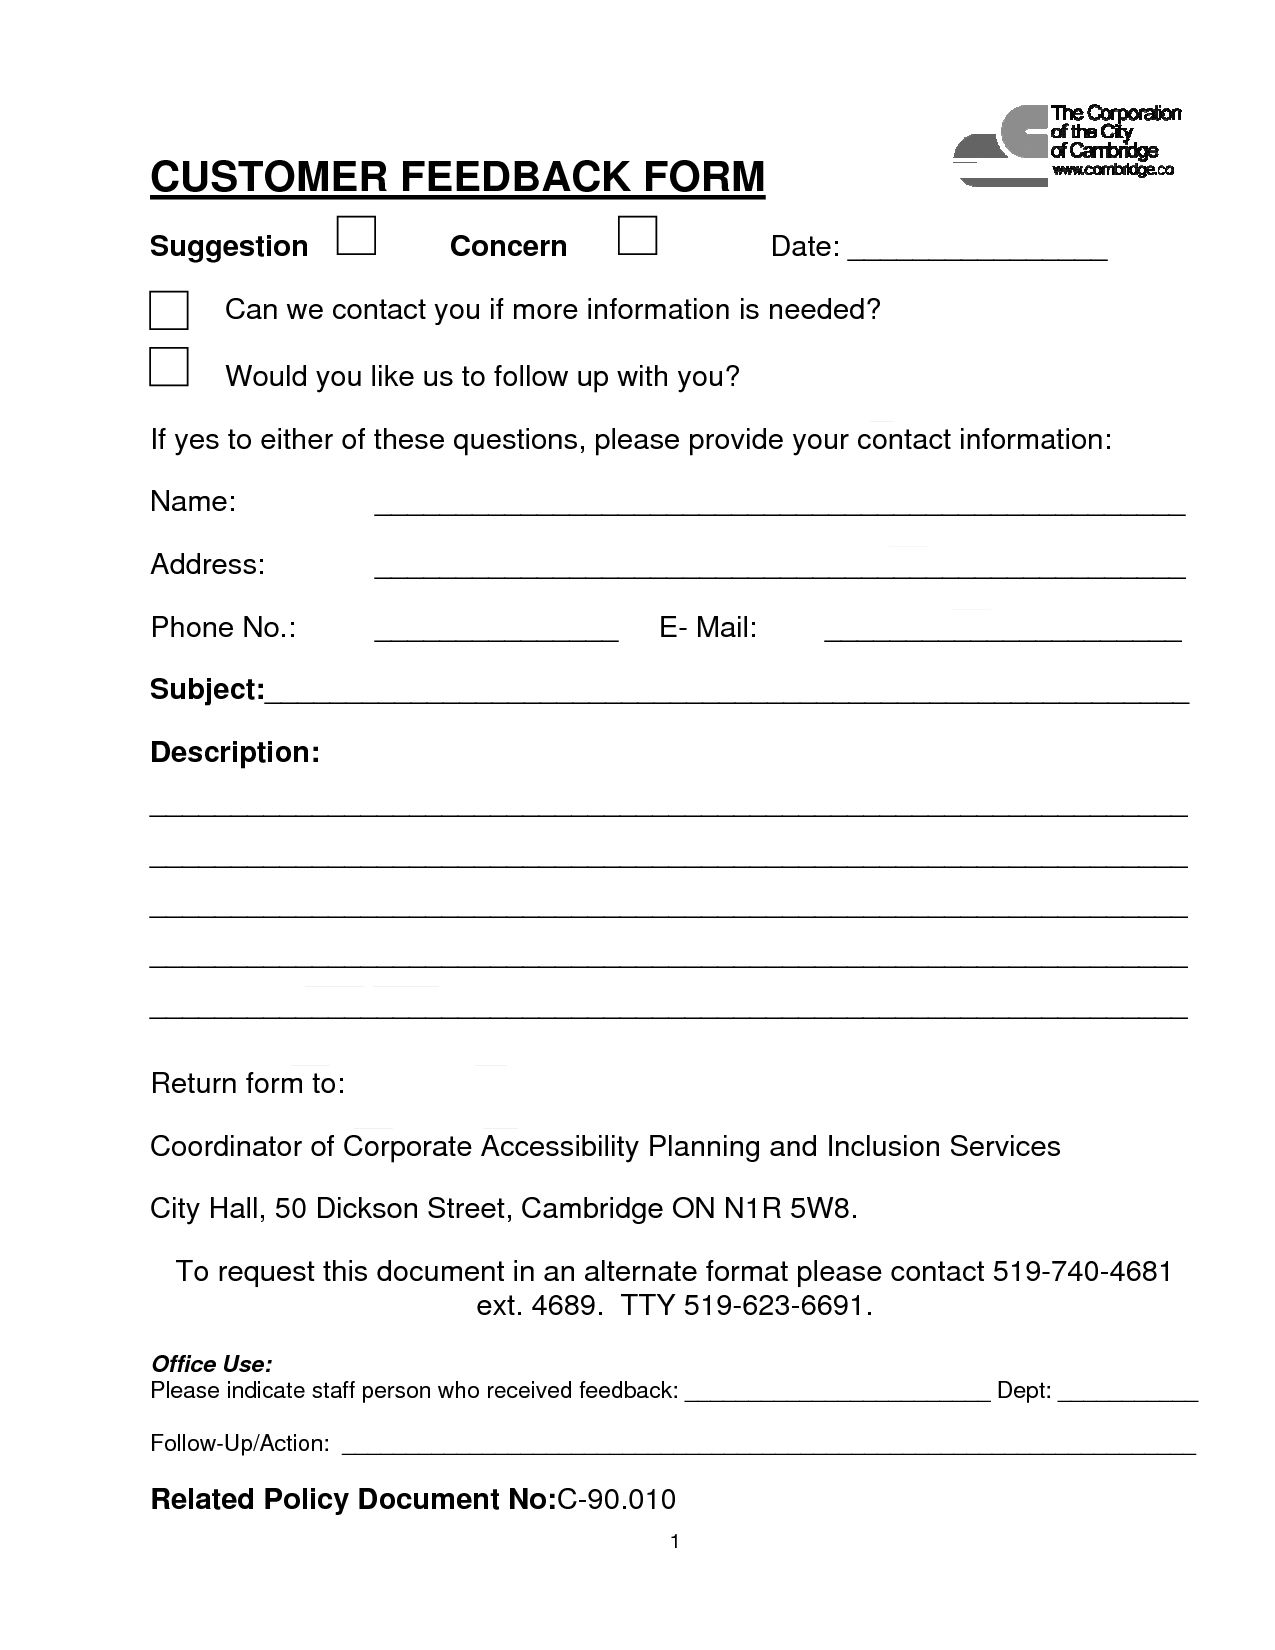 The Amusing Customer Contact Form Customer Feedback Form Pdf Download Within Employee Satisfaction S Feedback For Students Customer Feedback Survey Template Customer feedback form template word